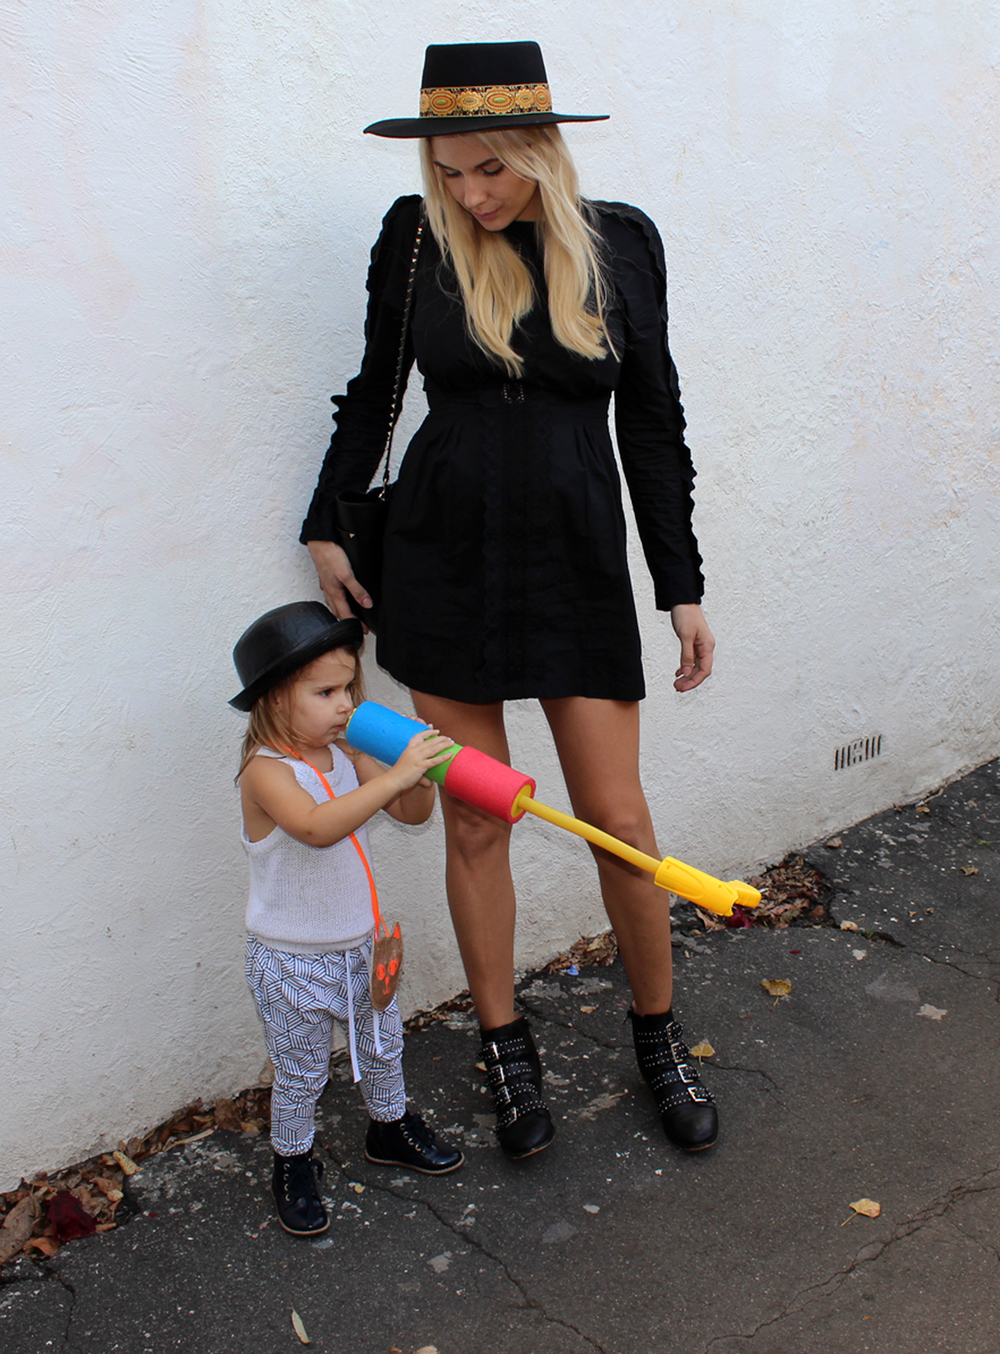 Monochrome Joggers street style. Mommy and me fashion.